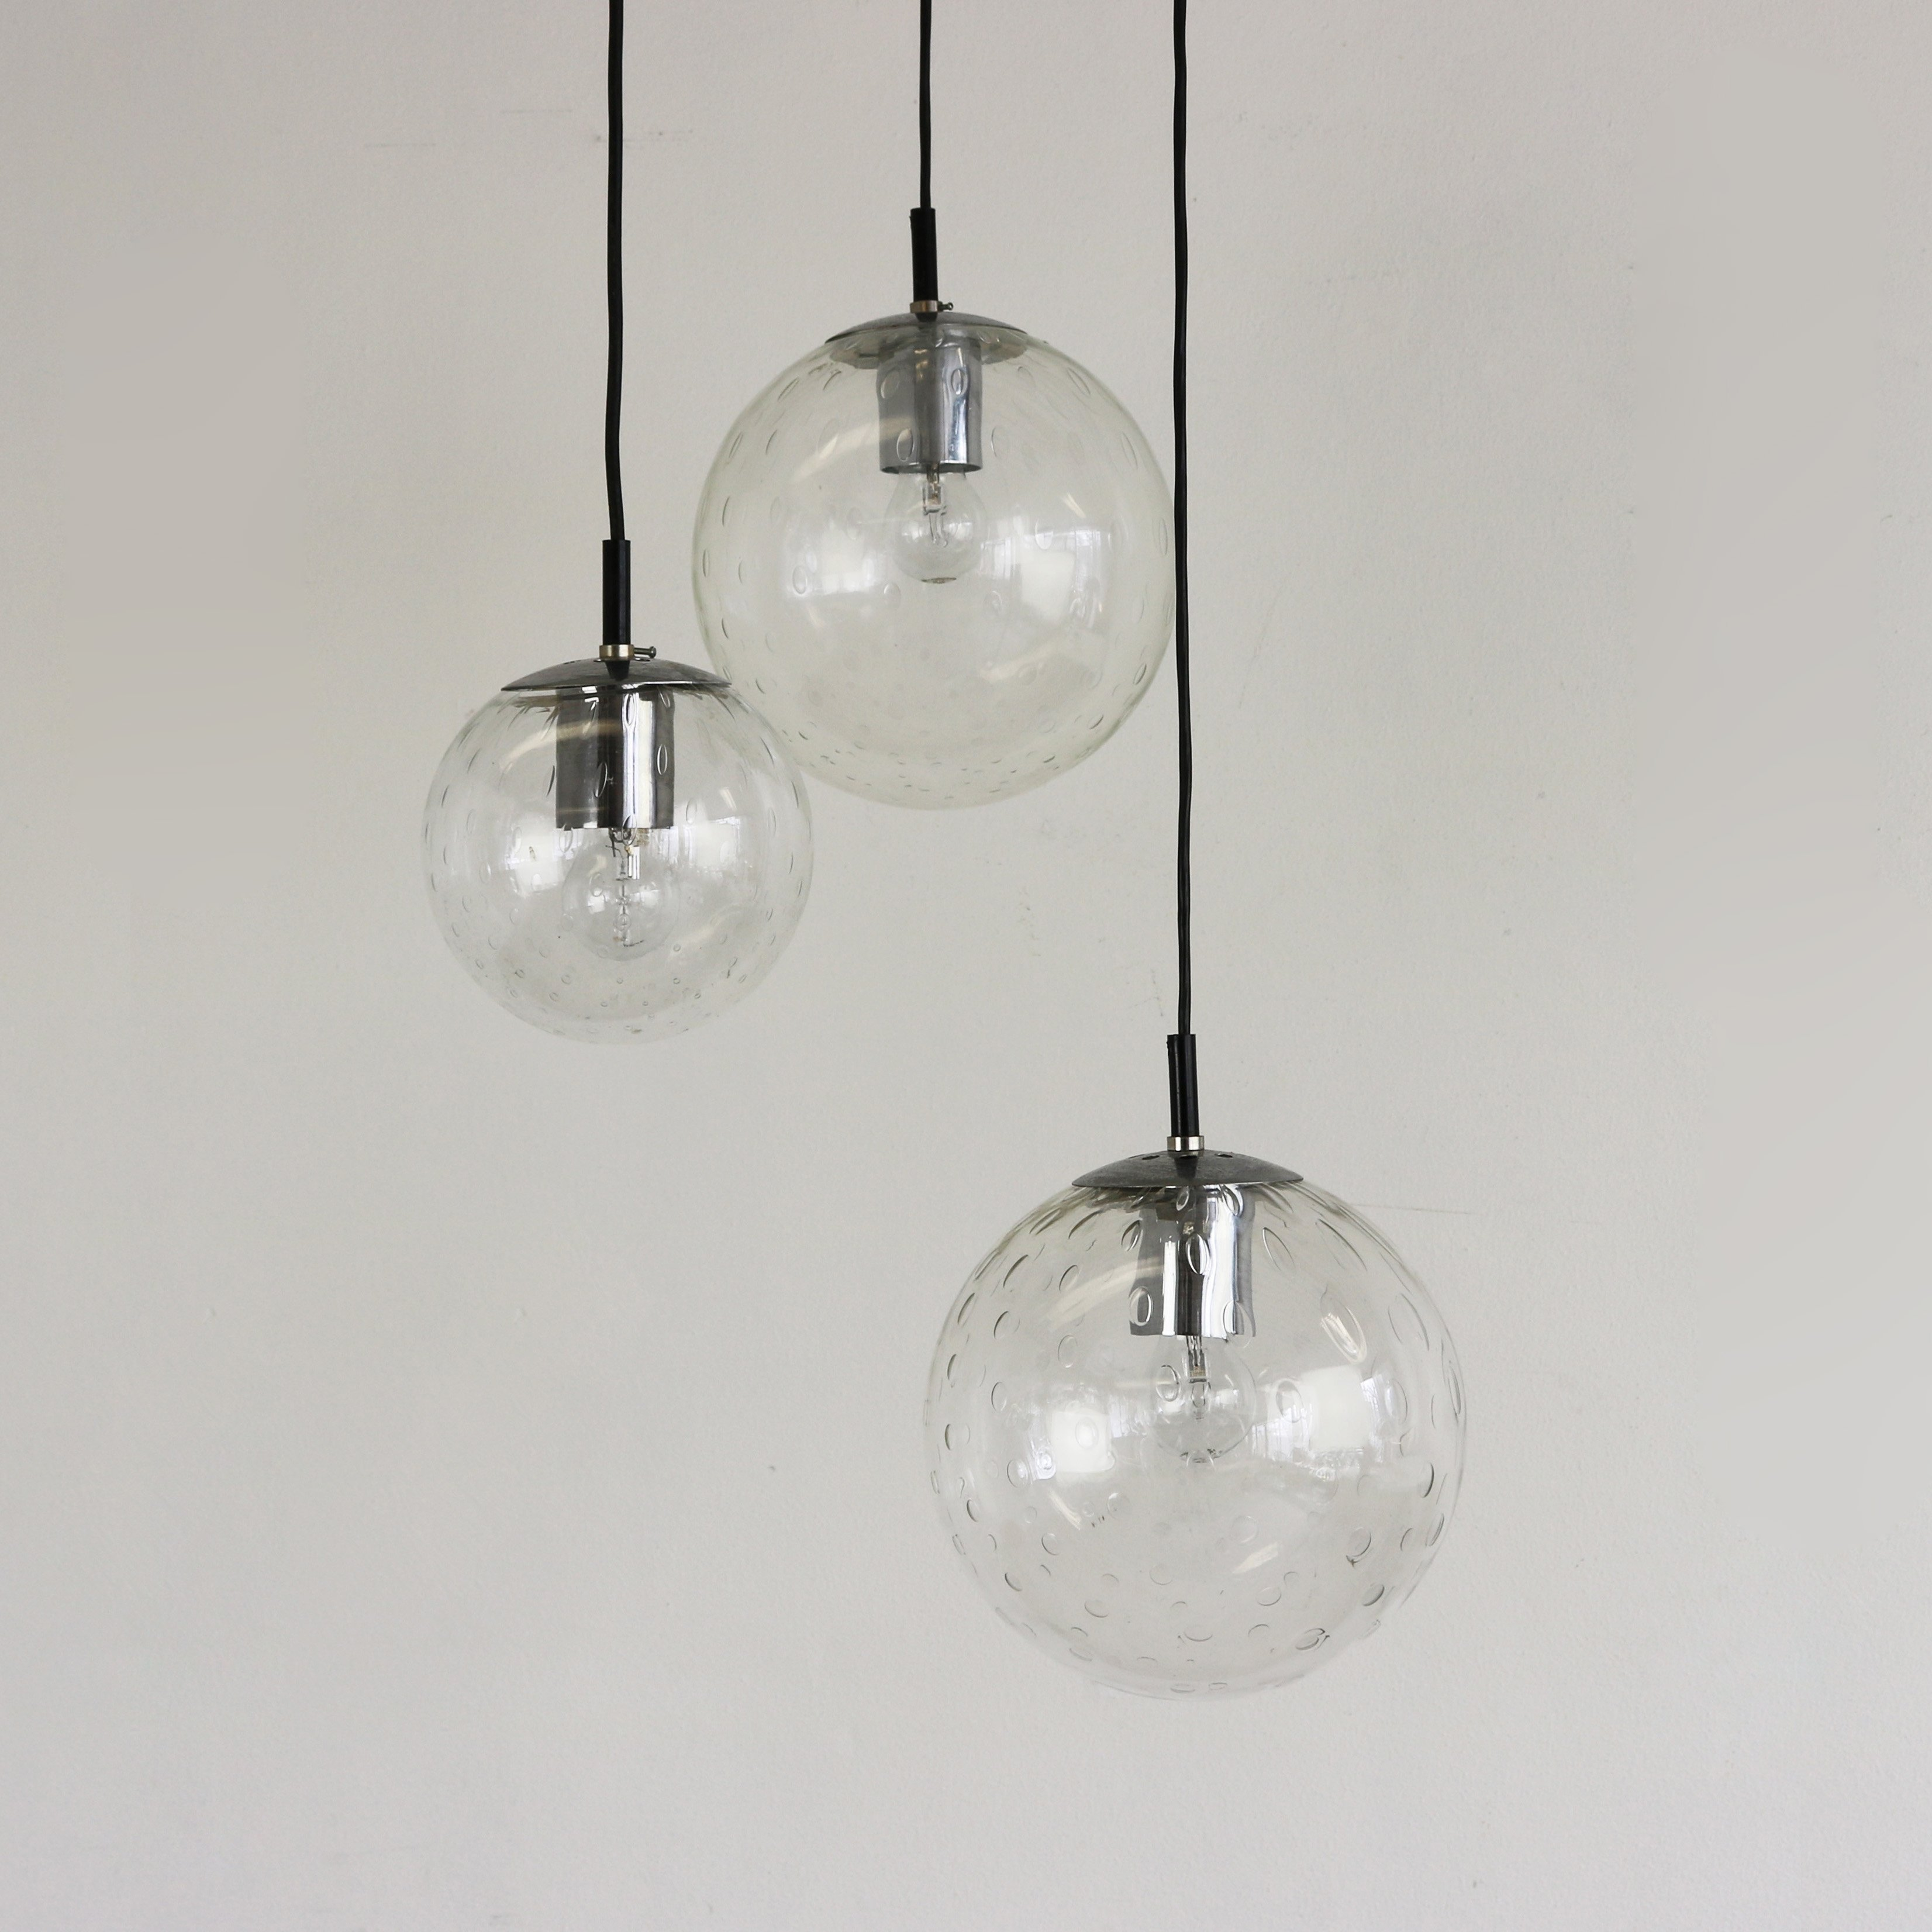 Glass globe pendants by raak amsterdam 1960s 62057 glass globe pendants by raak amsterdam 1960s aloadofball Gallery